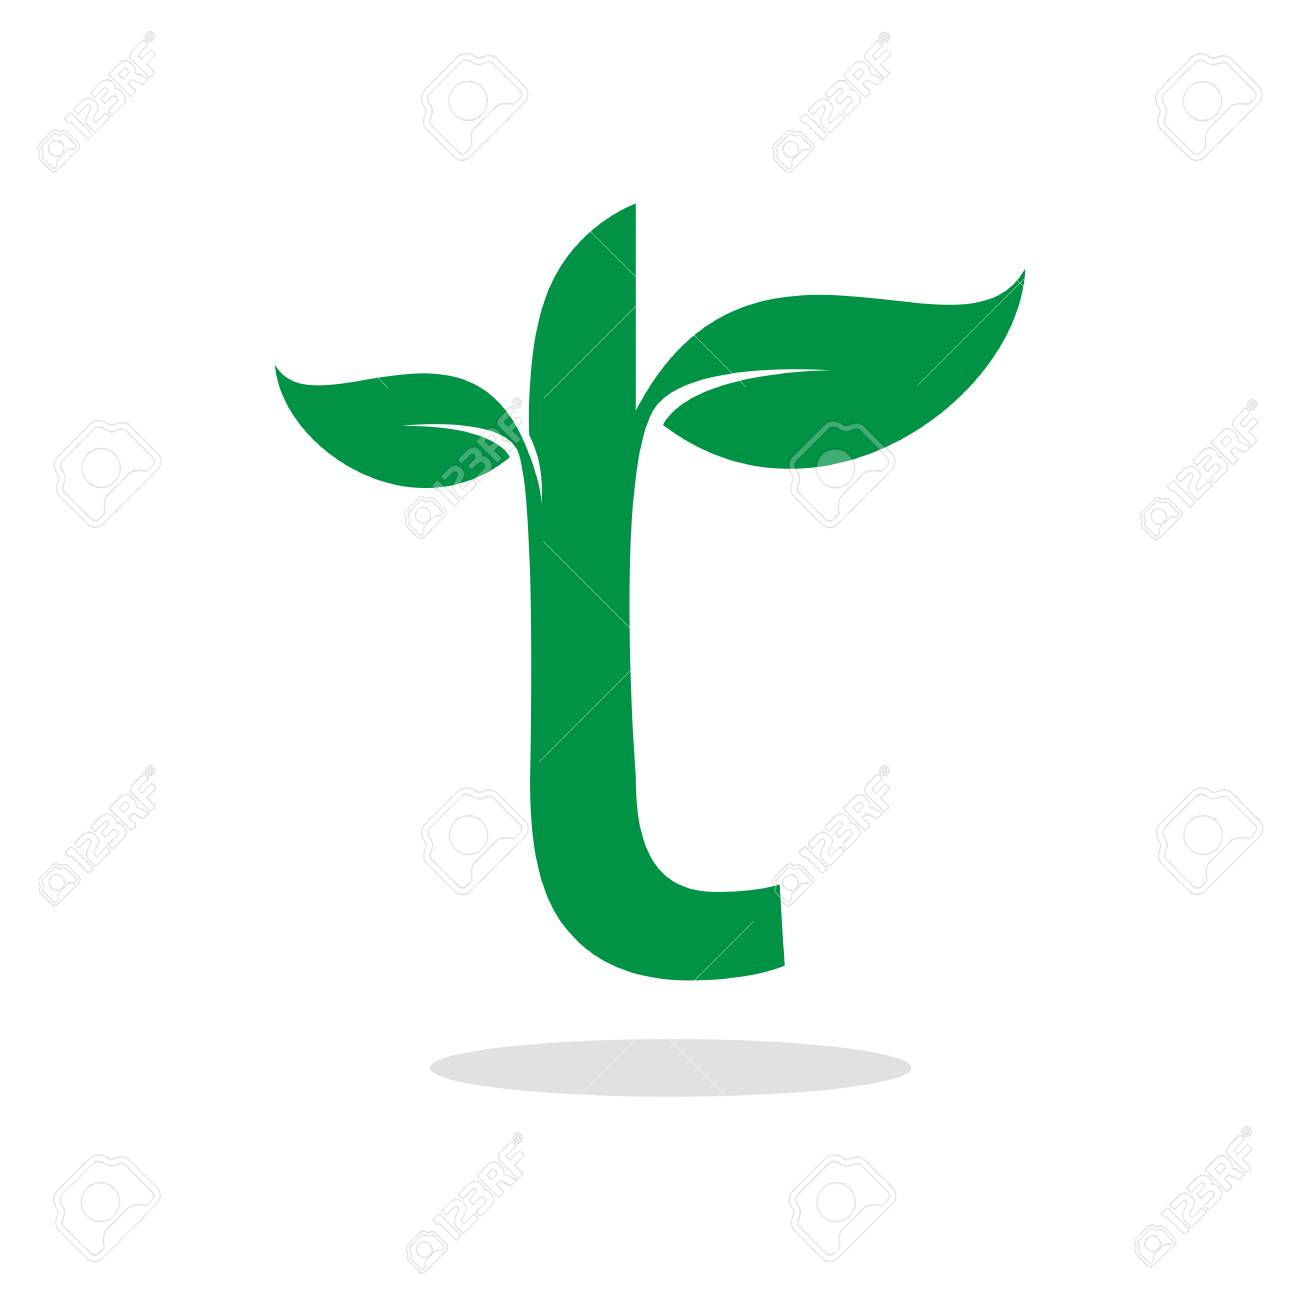 Herbal Symbol For Letter T Royalty Free Cliparts Vectors And Stock